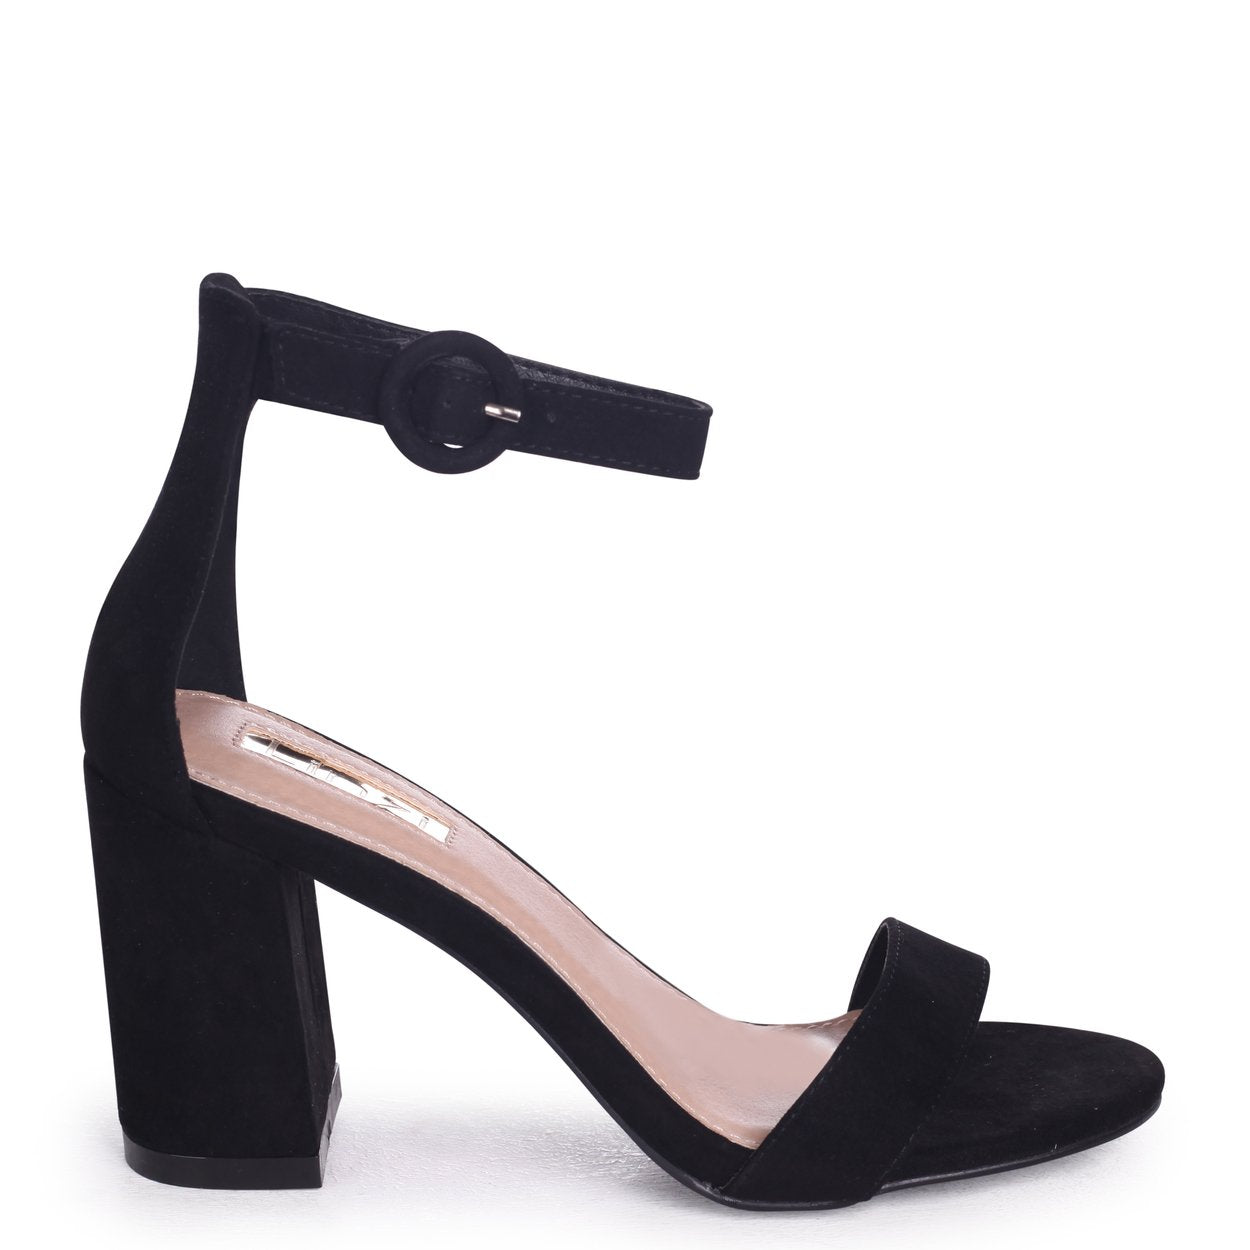 26a6d0586eb SESAME - Black Suede Barely There Block Heeled Sandal